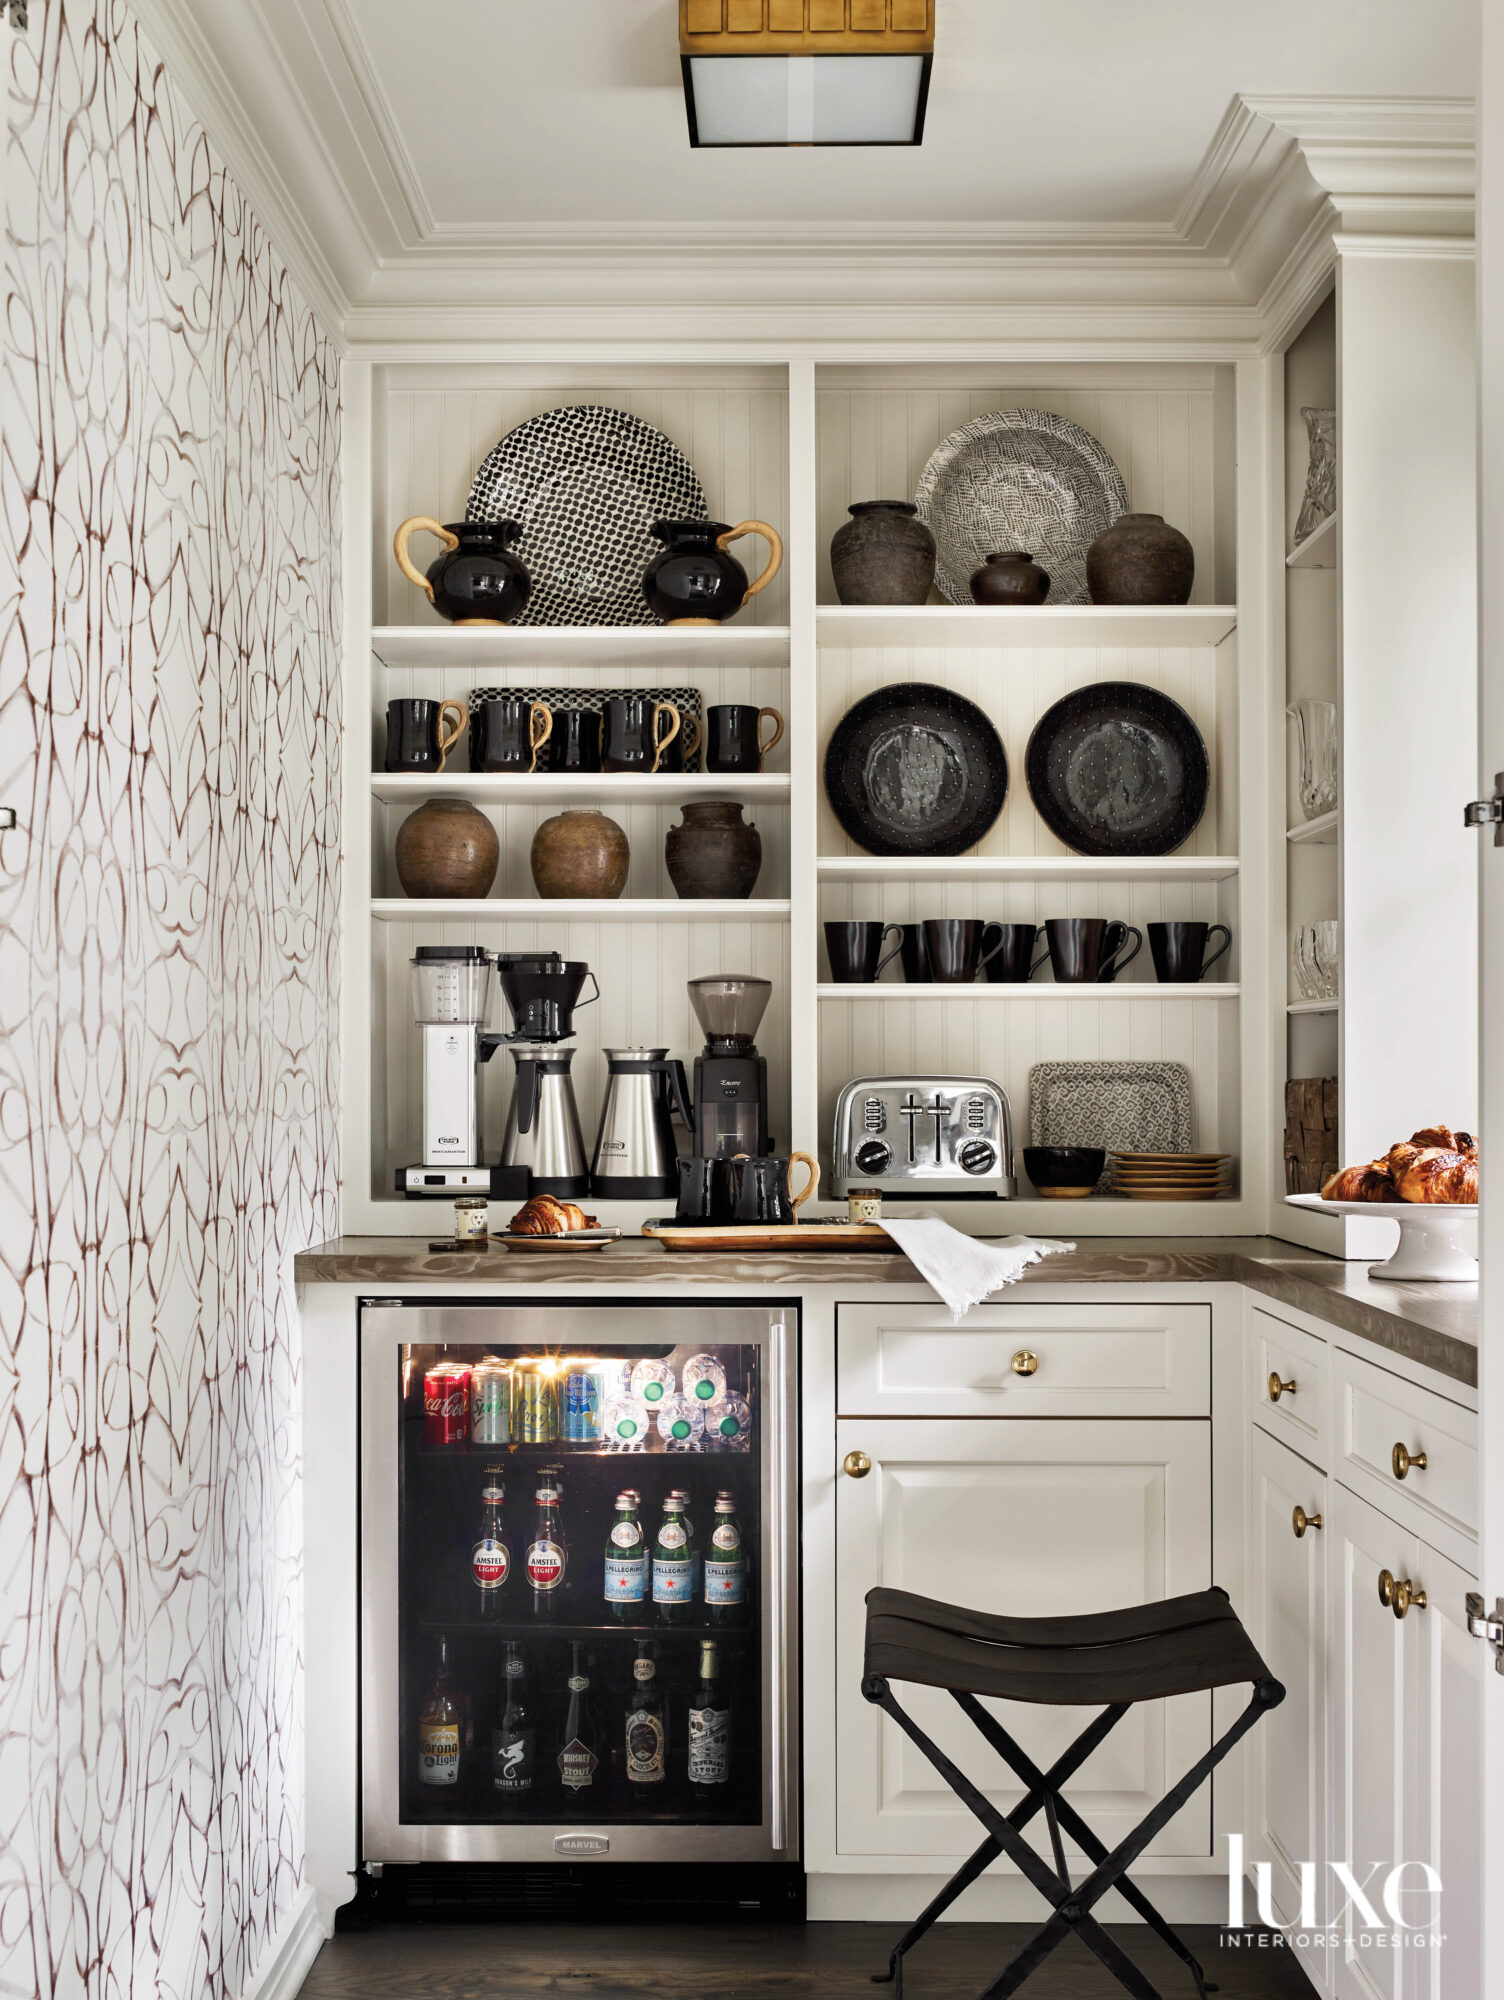 Well-appointed pantry with patterened wallpaper, built-in display shelves and creamy paint color